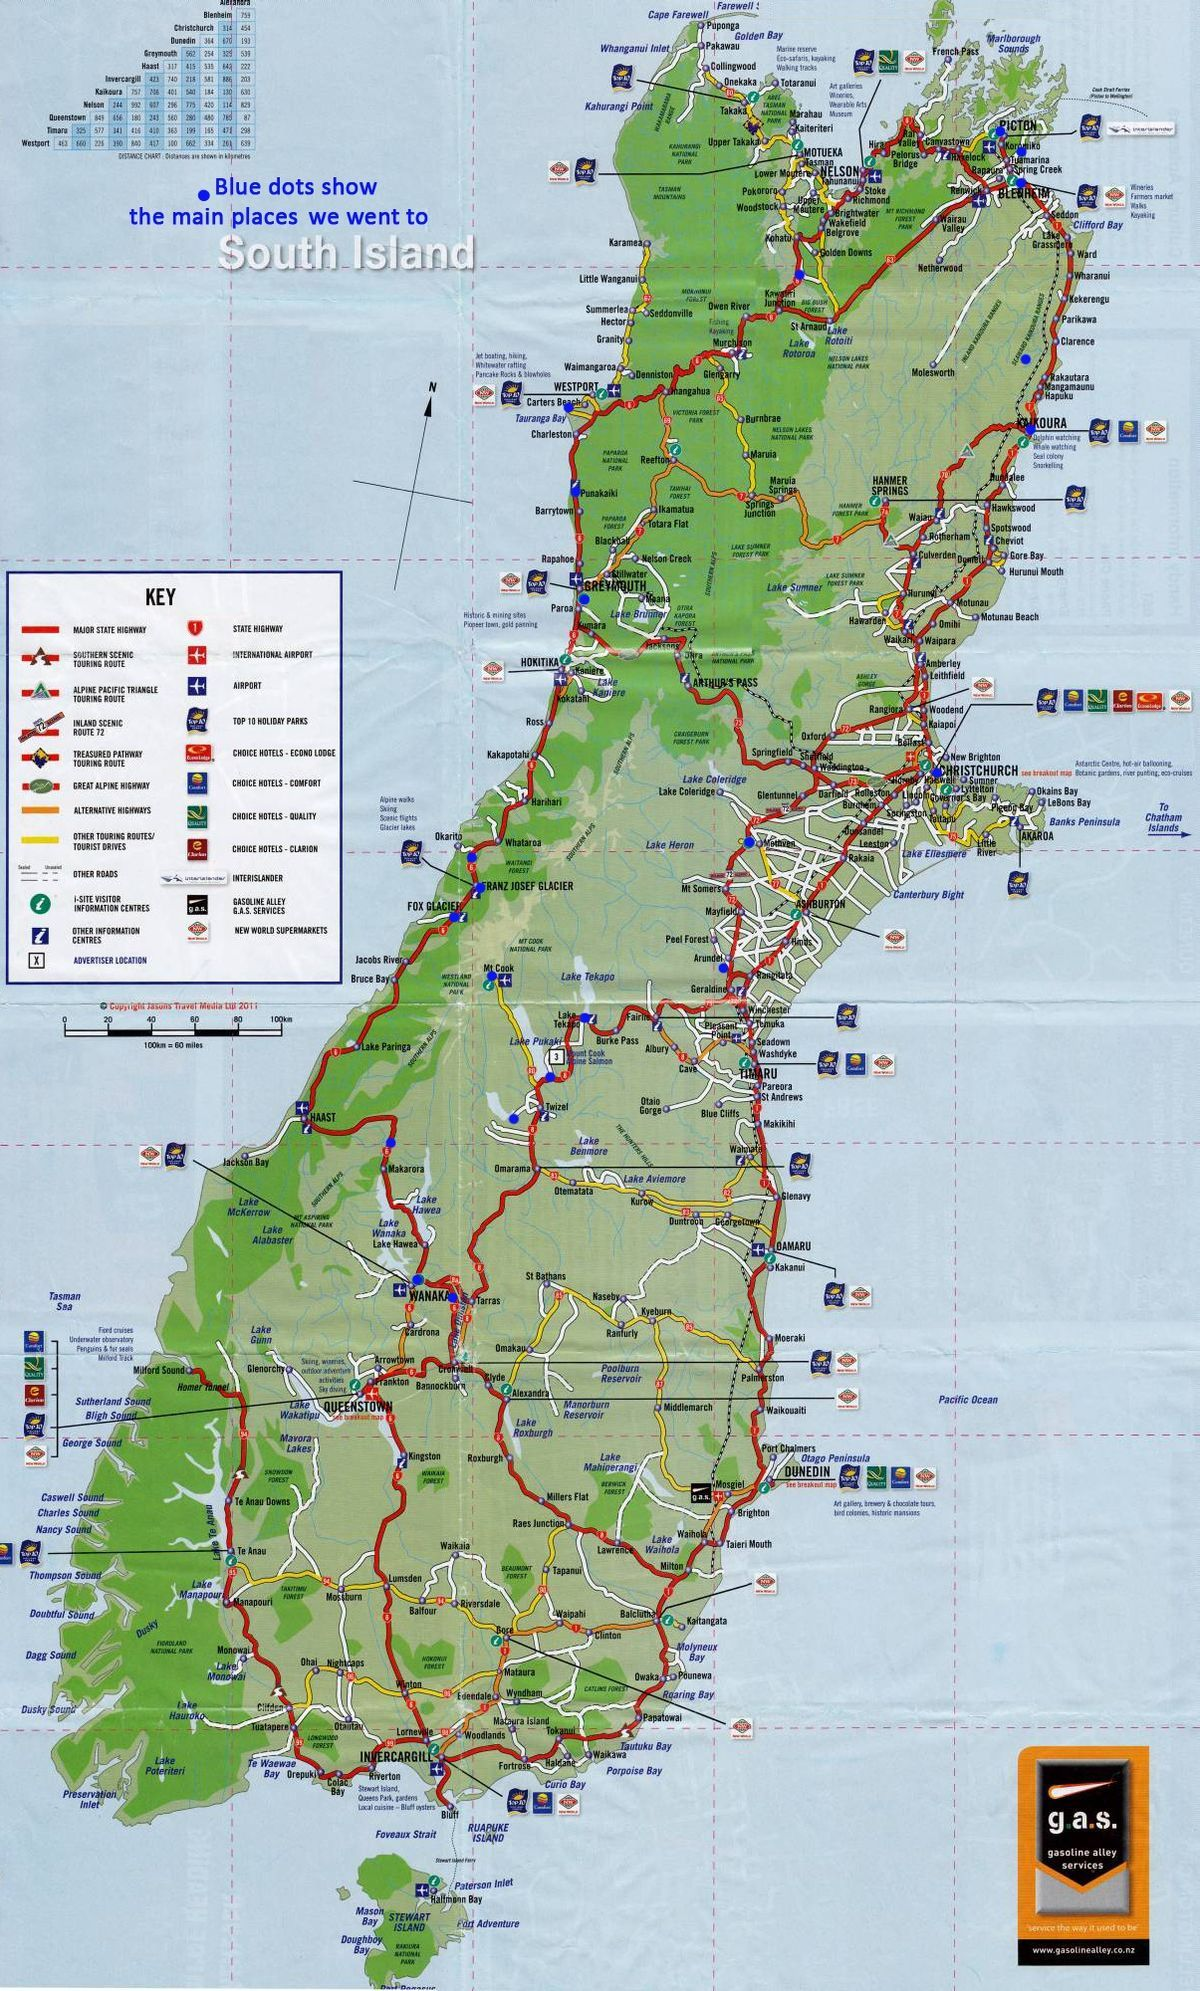 Road Map Of New Zealand South Island.Pin By Marcia Raven On New Zealand Cruise In 2019 New Zealand